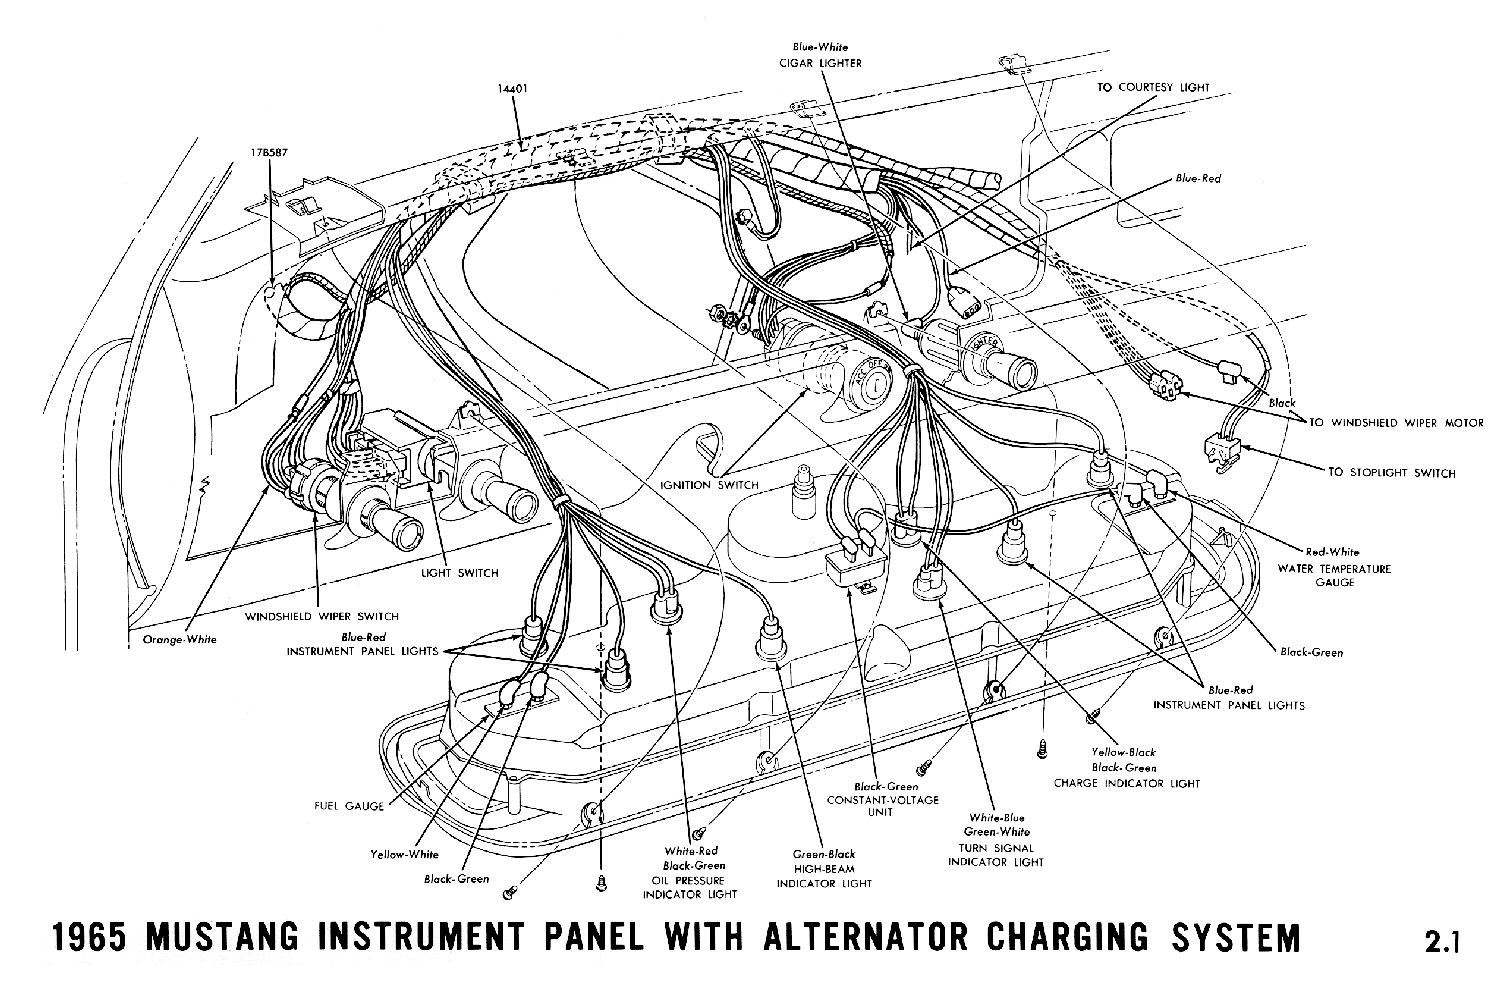 1965 Mustang Wiring Schematic Diagrams 1964 F100 Diagram Average Joe Restoration 1966 Vacuum